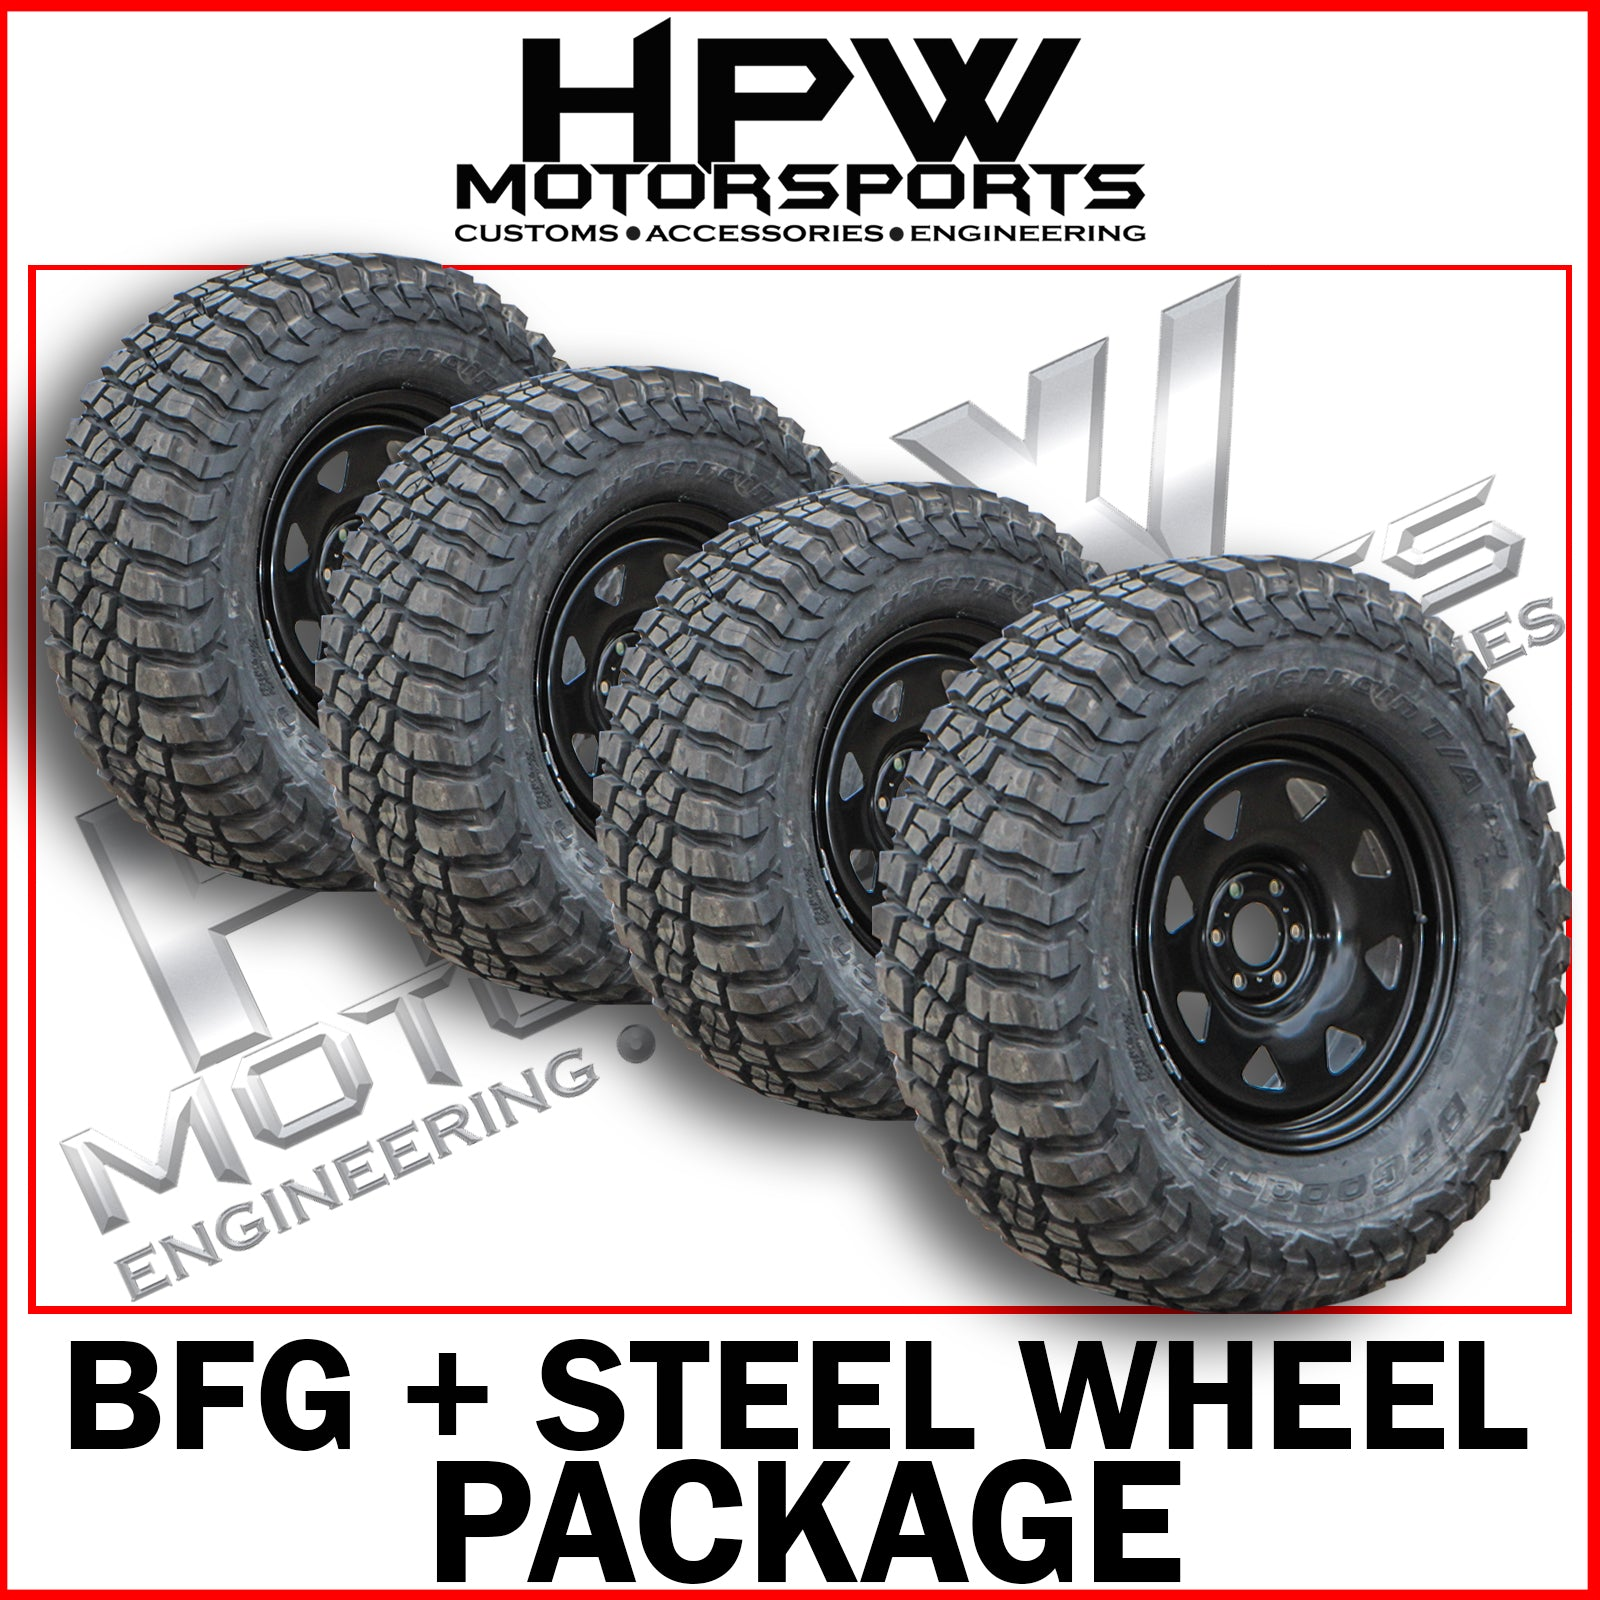 275/70/17 A/T BFGOODRICH TYRES & DYNAMIC STEEL WHEELS 17X8 (SET OF 4)